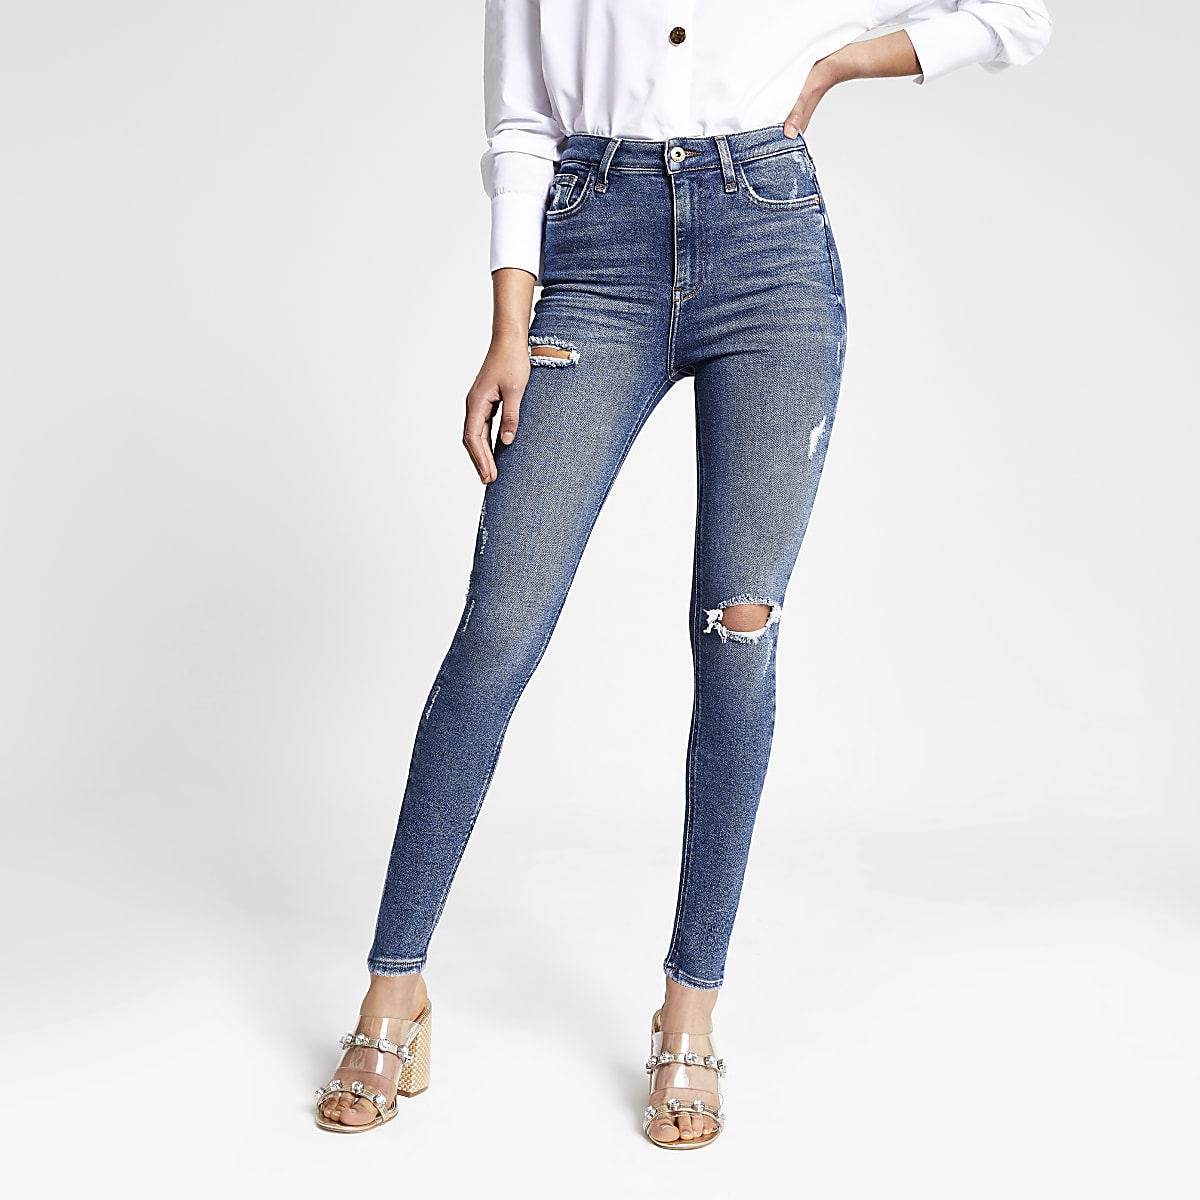 Hailey - Ripped jeans van authentiek denim met hoge taille